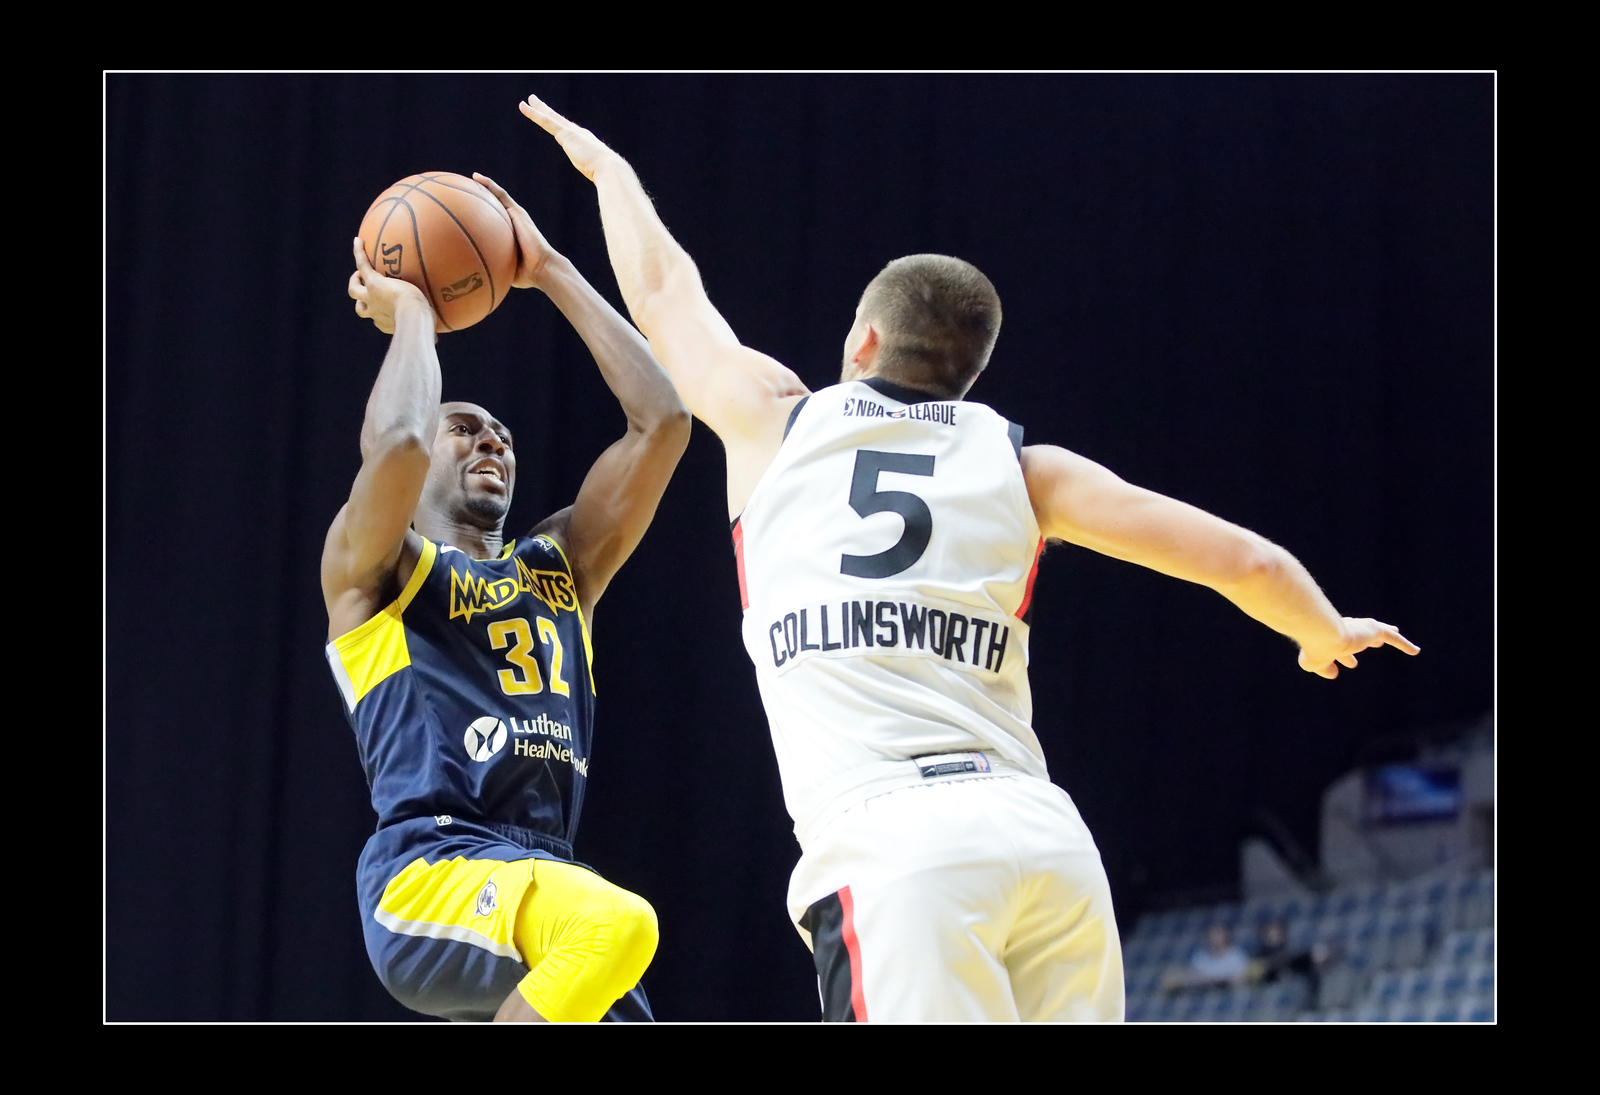 IMAGE: https://photos.smugmug.com/Sports-Events/Mad-Ants-Current-Season/Nov-29-2018/i-4JVkQZj/0/53609e85/X3/FX8A3756a-X3.jpg